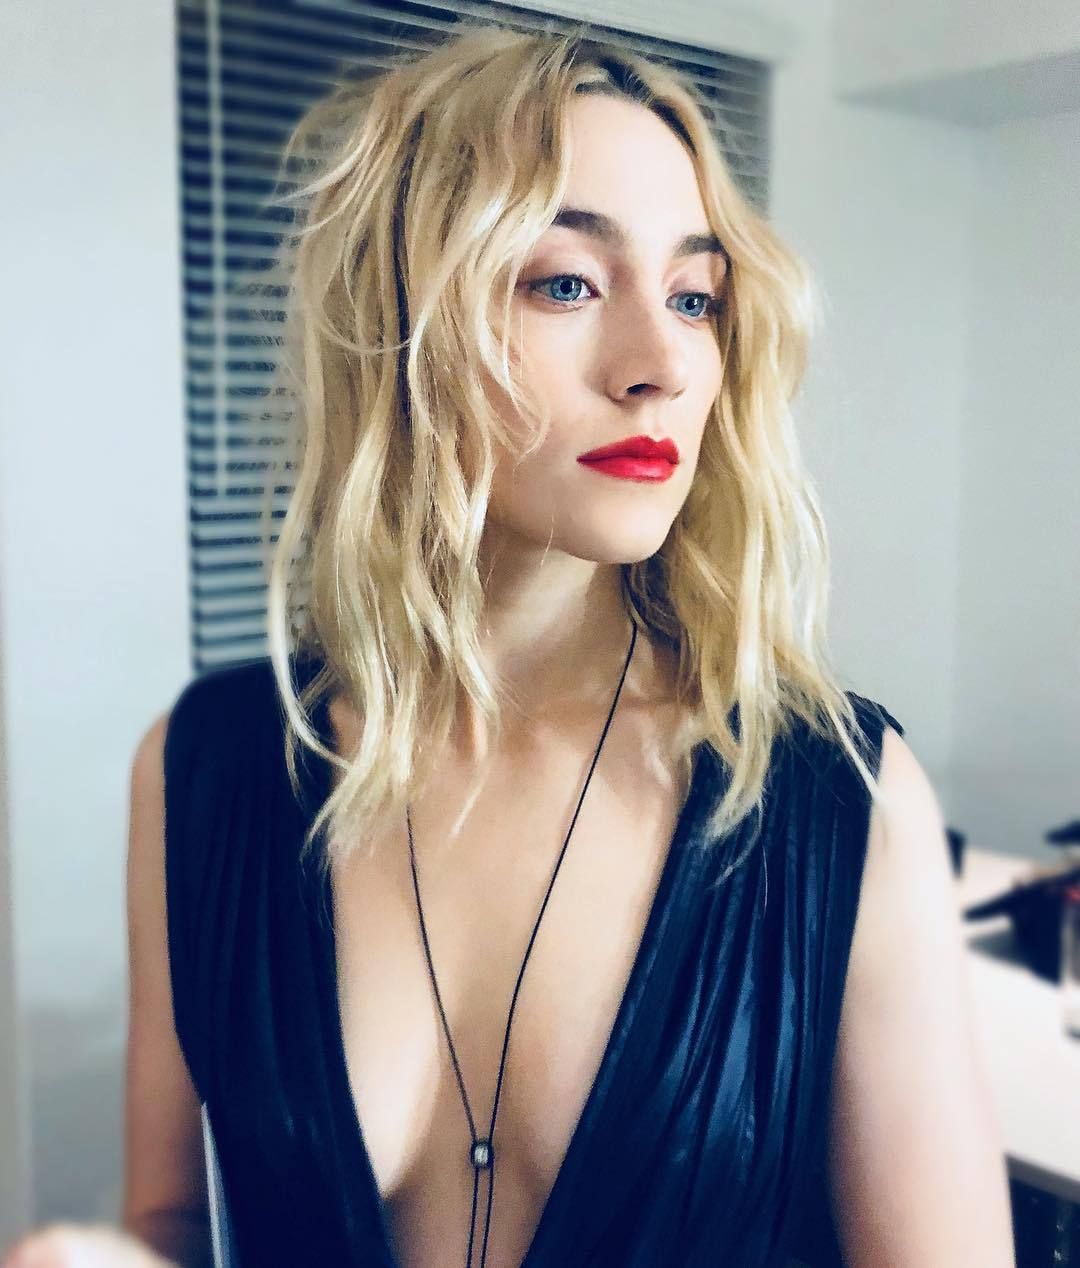 saoirse ronan awesome cleavage